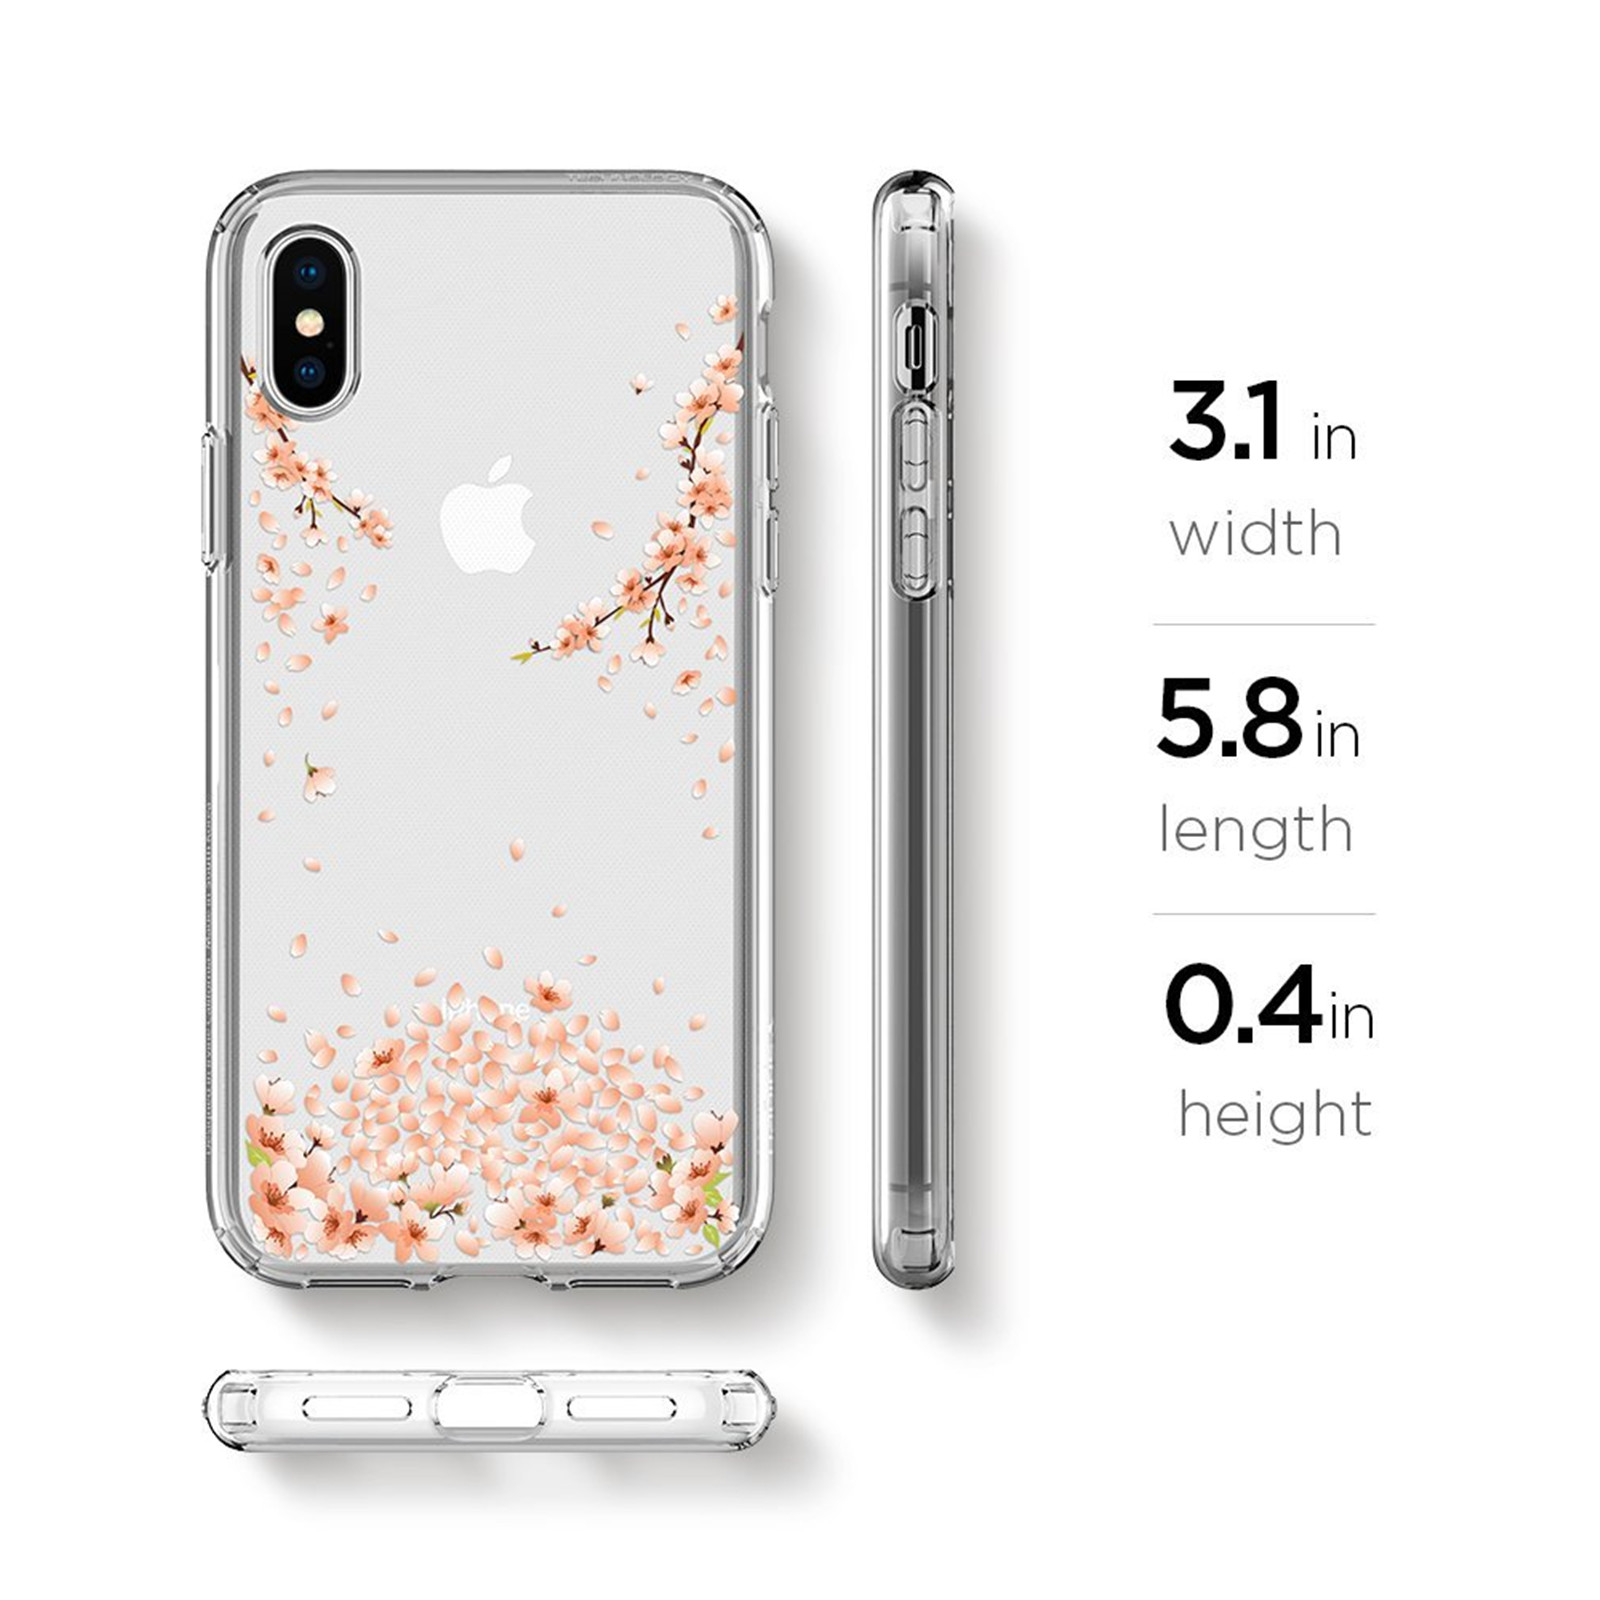 reputable site fac1d c97a4 Buy the Spigen iPhone X Liquid Crystal Blossom Case, Blossom Crystal  Clear,... ( 057CS22121 ) online